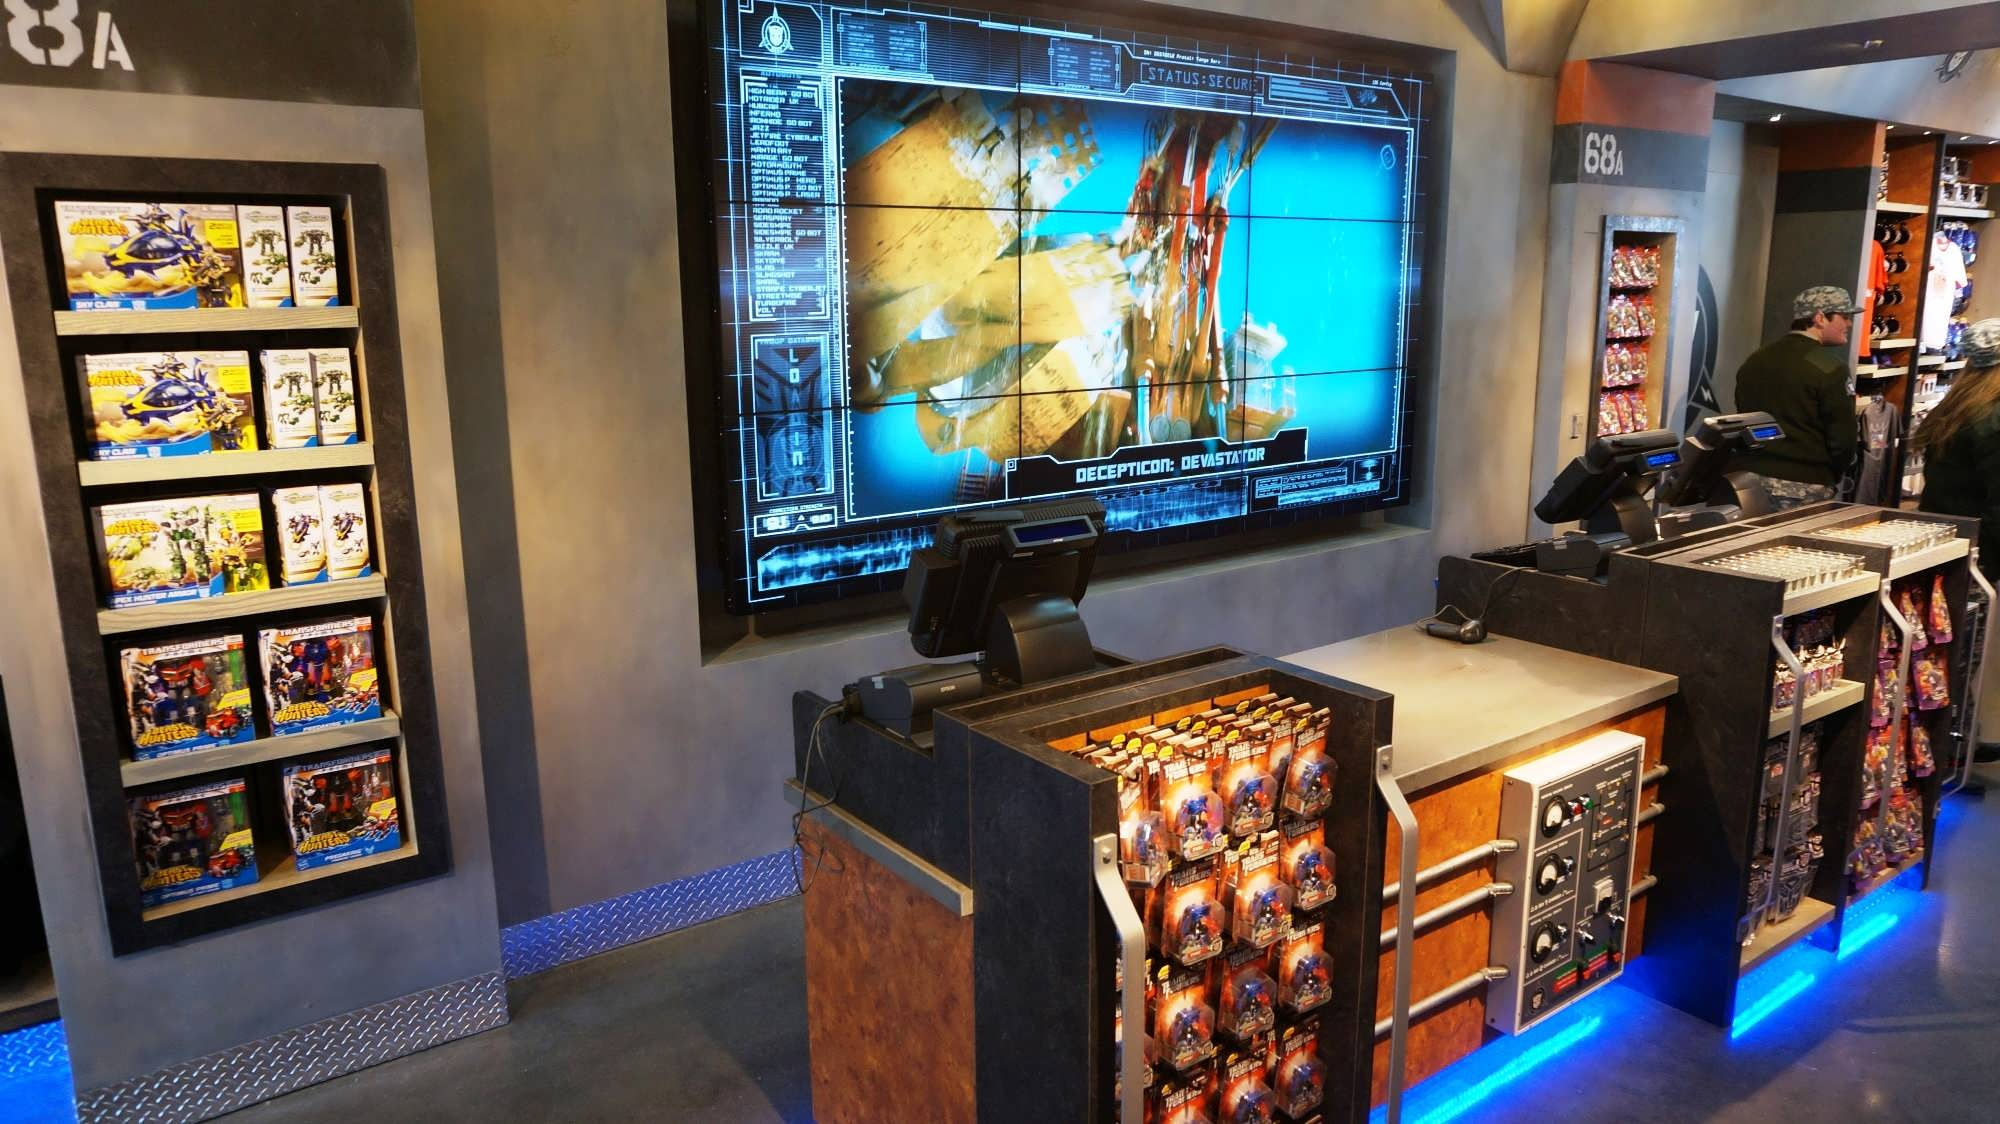 Transformers gift shop now open at Universal Studios Florida ...